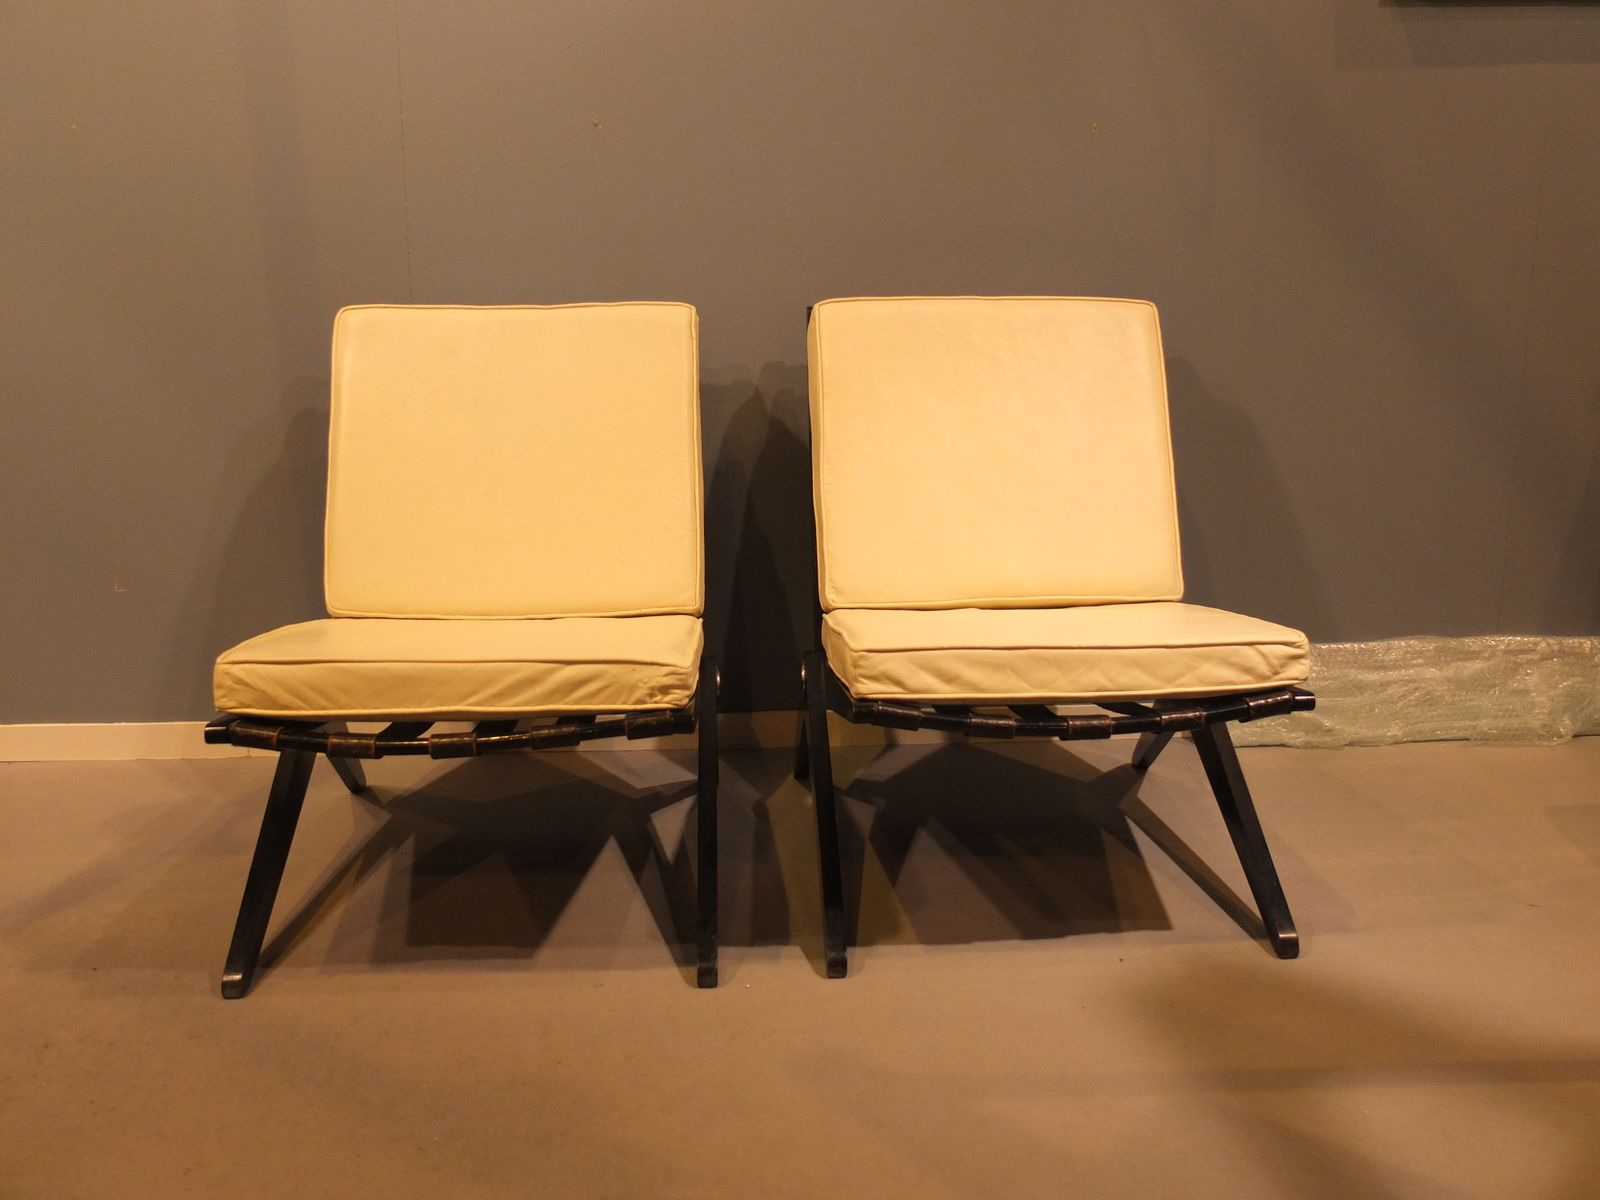 Mid century scissor chairs by pierre jeanneret for knoll set of 2 for sale at pamono - Knoll inc chairs ...